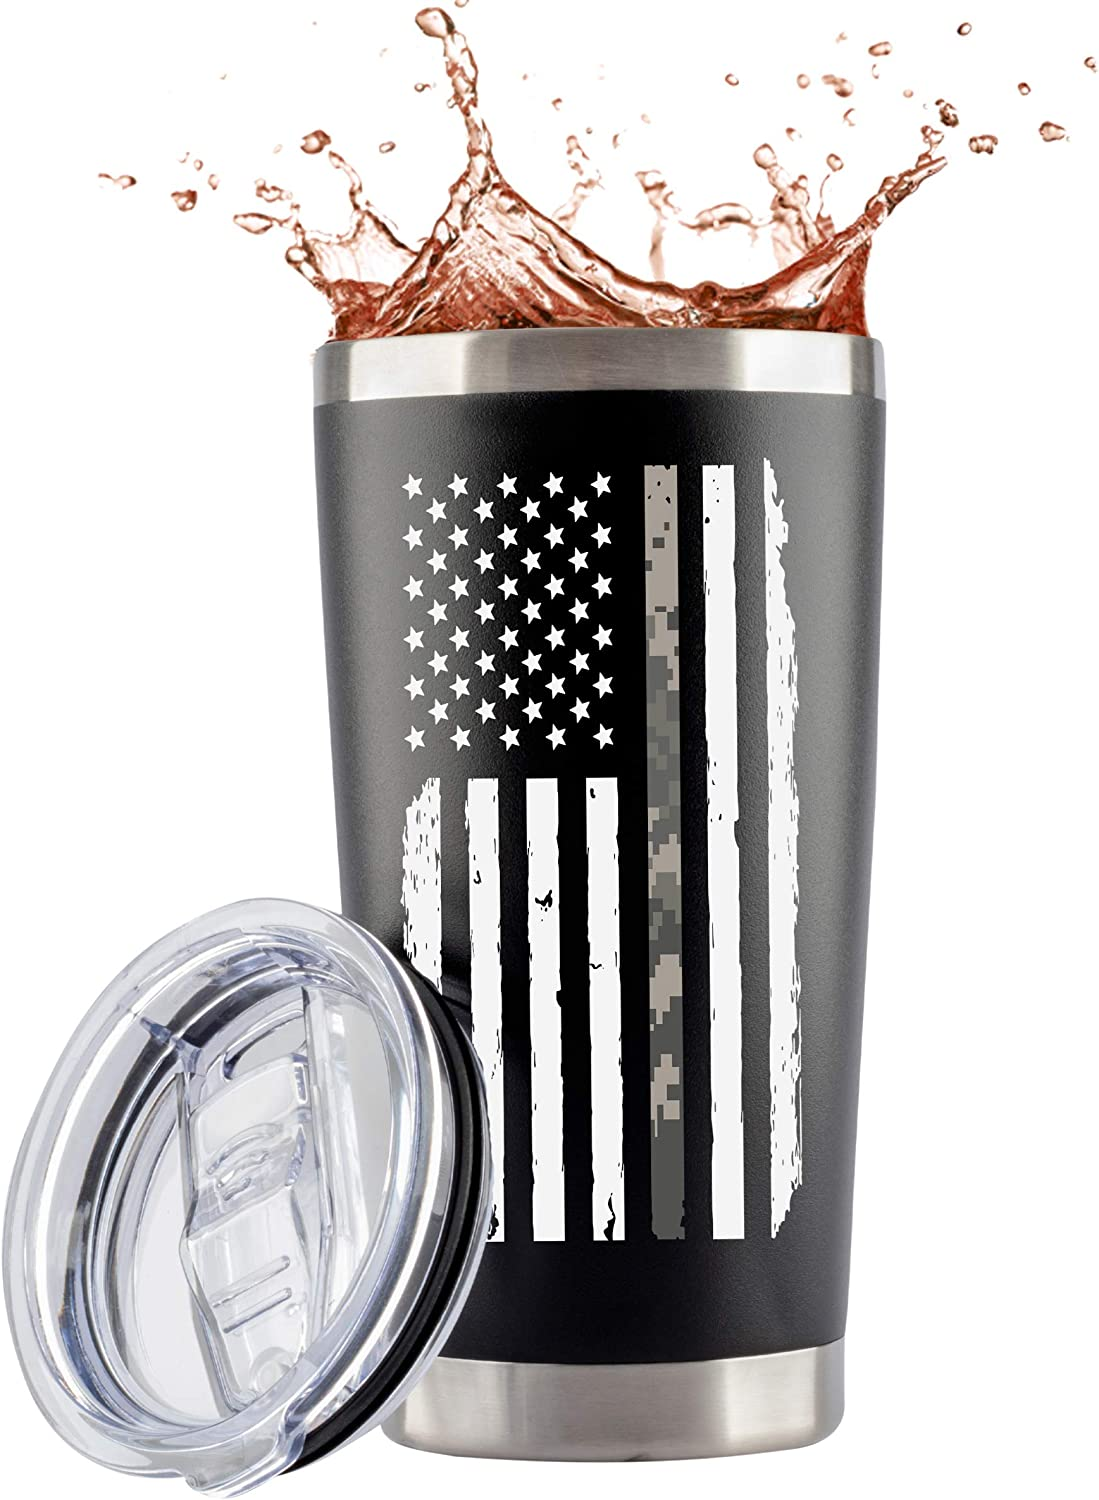 Army Gifts Tumbler | Large 20oz Camo Stainless Steel Travel Mug with Lid for Coffee/Cold Drinks | Camo Cup For Soldiers boyfriend shop US Military Veterans | by JENVIO